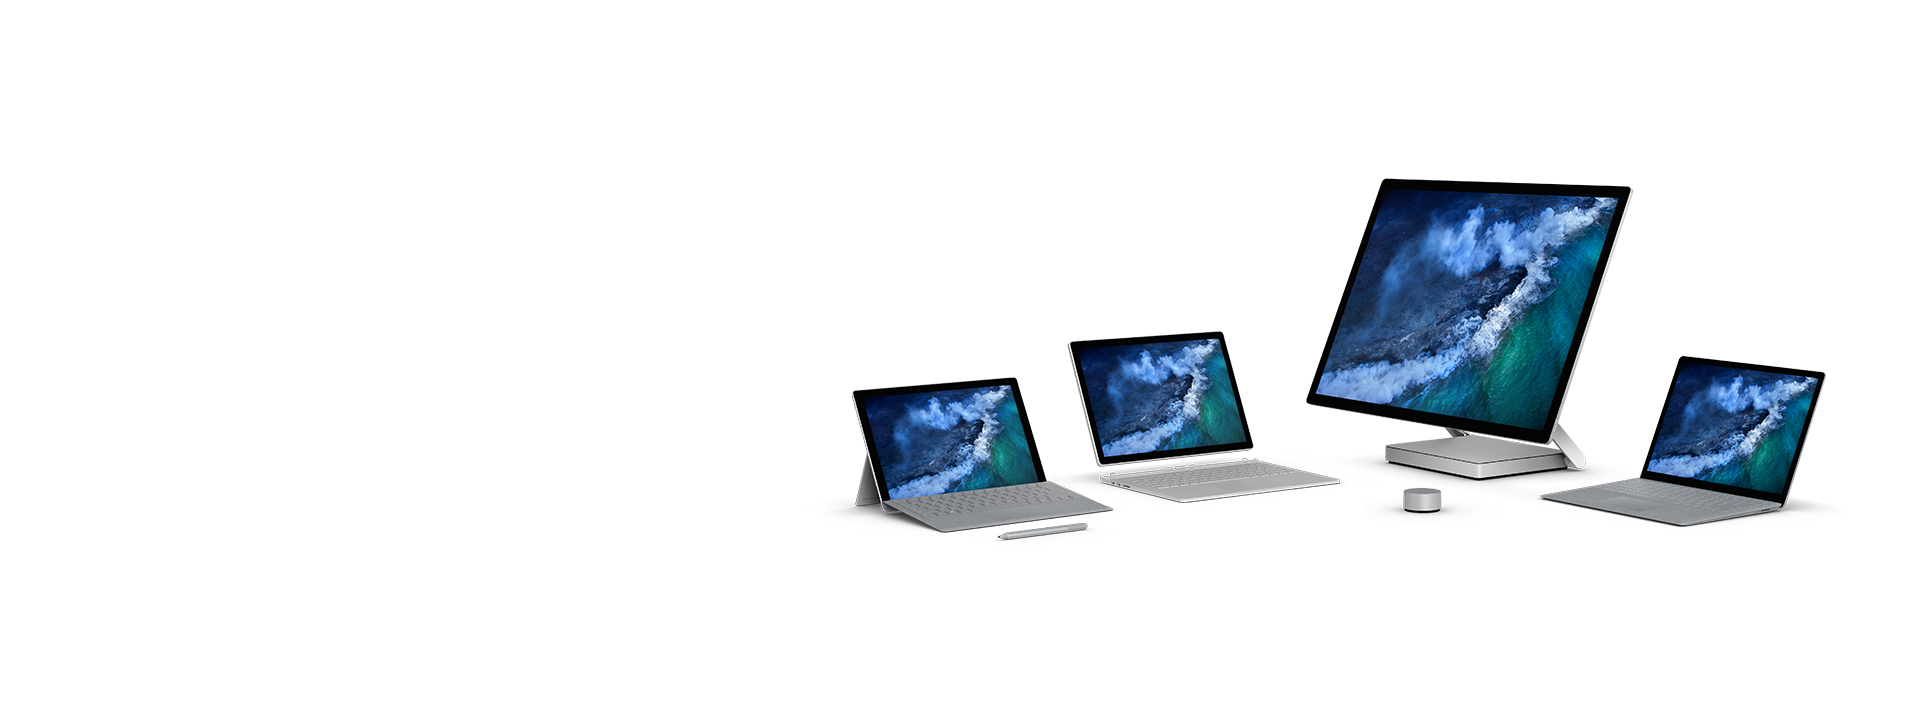 Surface 系列 – Surface Pro、Surface Laptop、Surface Book 2 和 Surface Studio